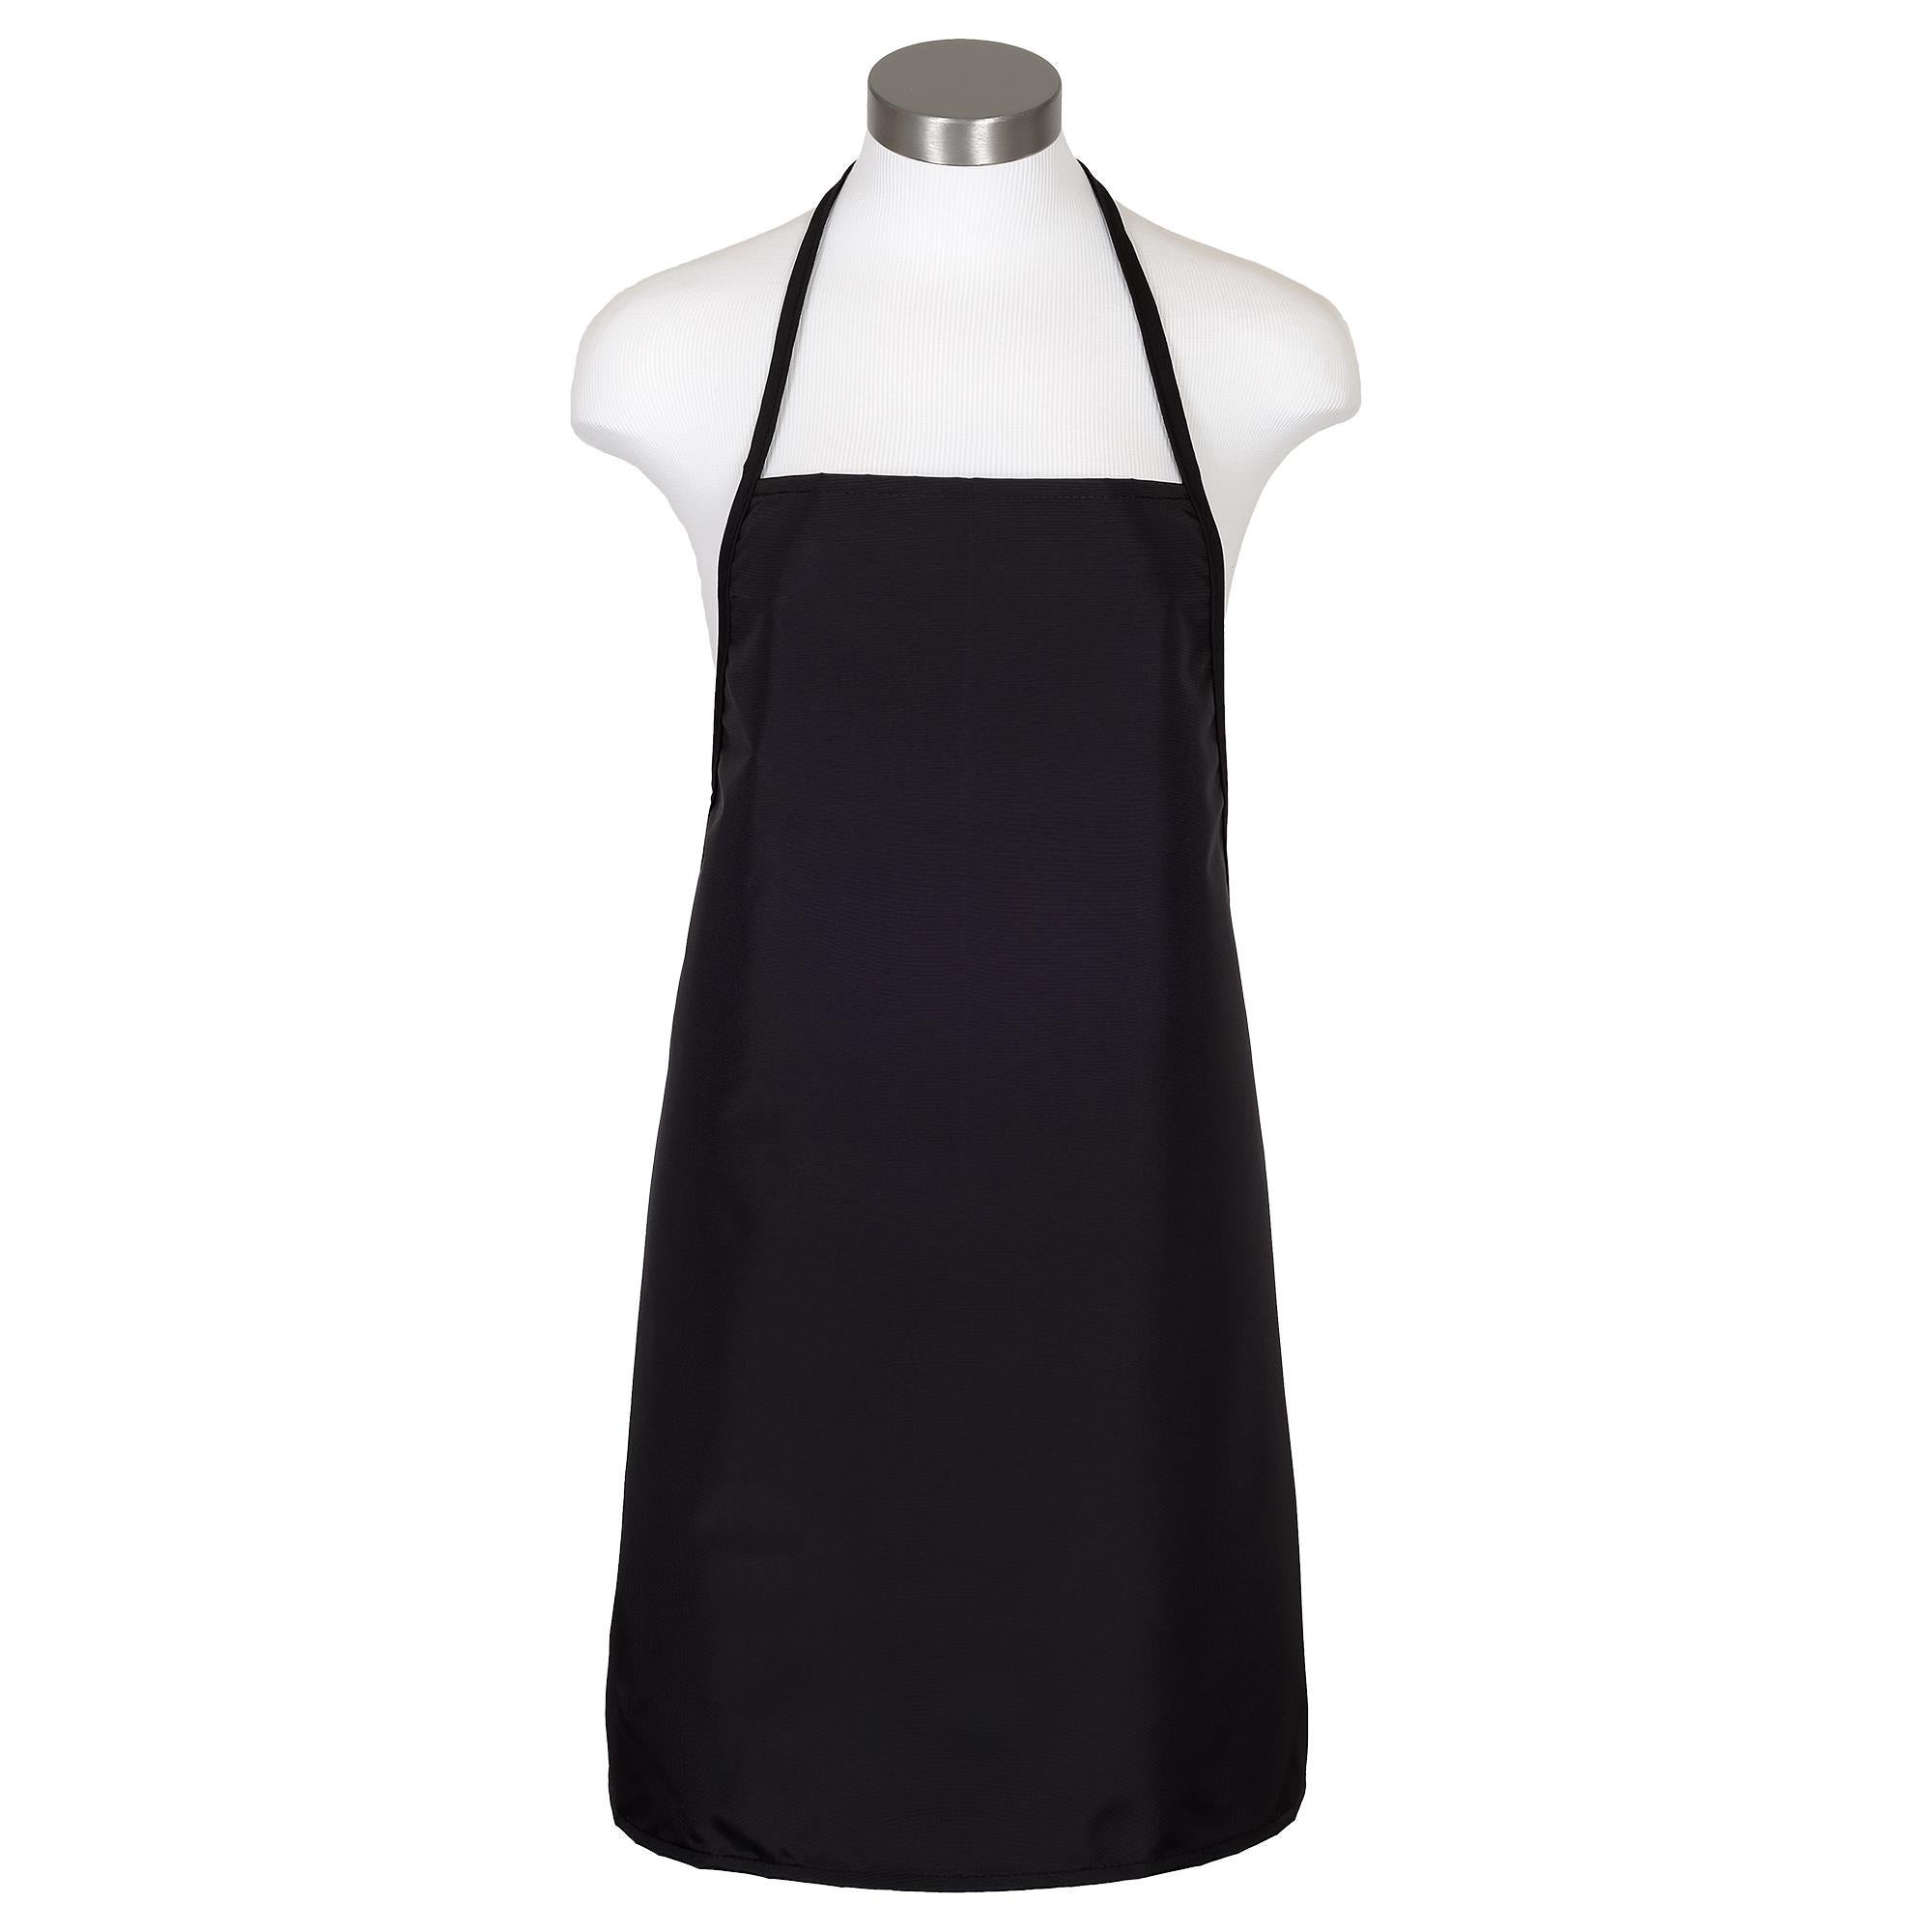 F66 Water Repellent Bib Apron 6pc/carton